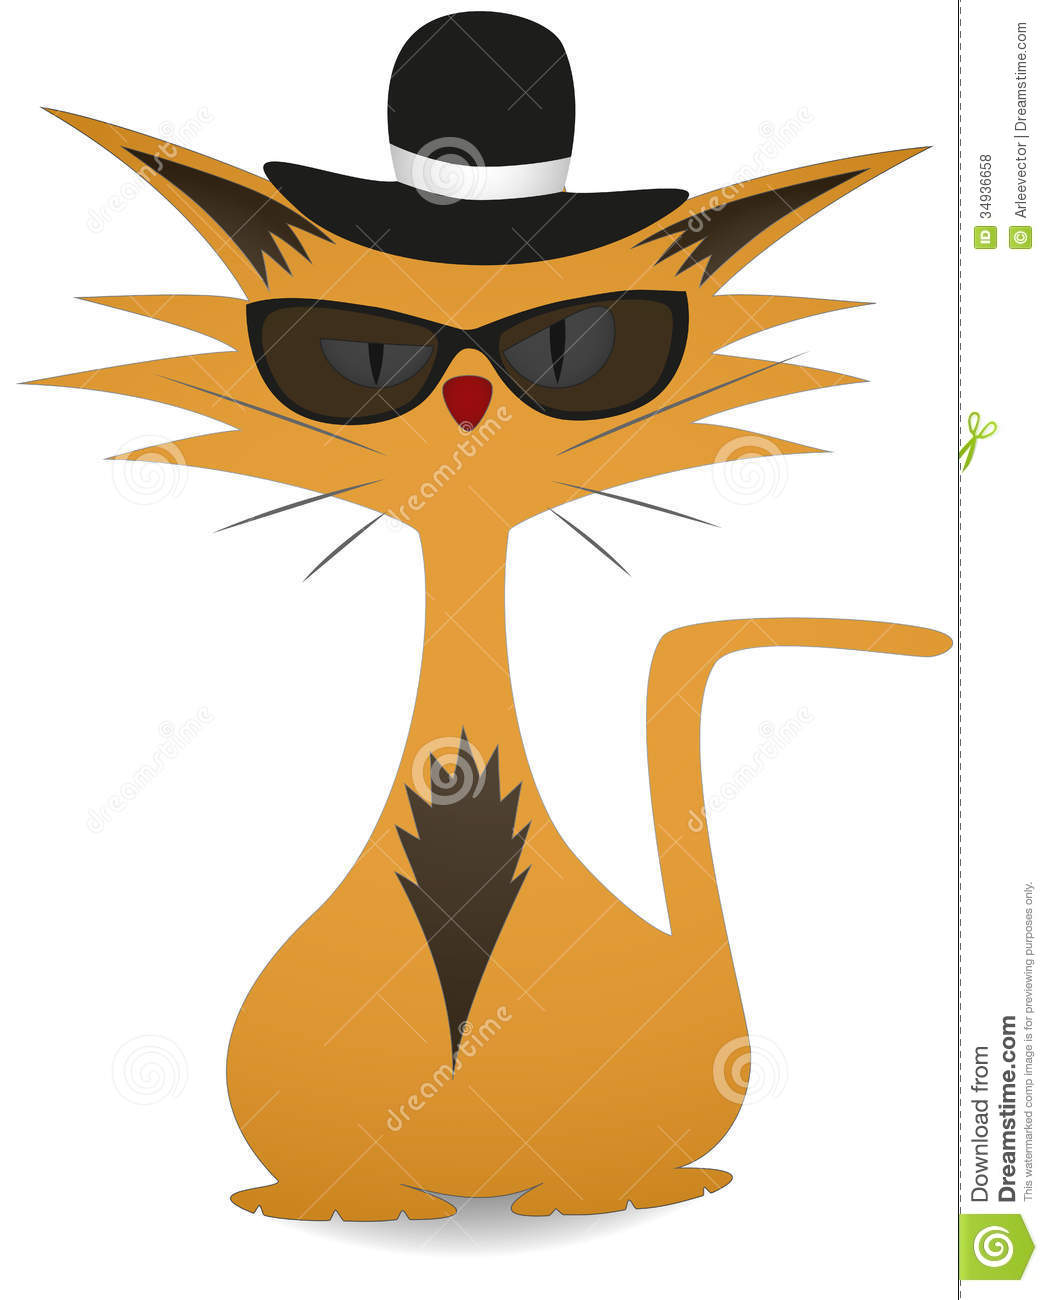 Cool Cat Royalty Free Stock Photos   Image  34936658